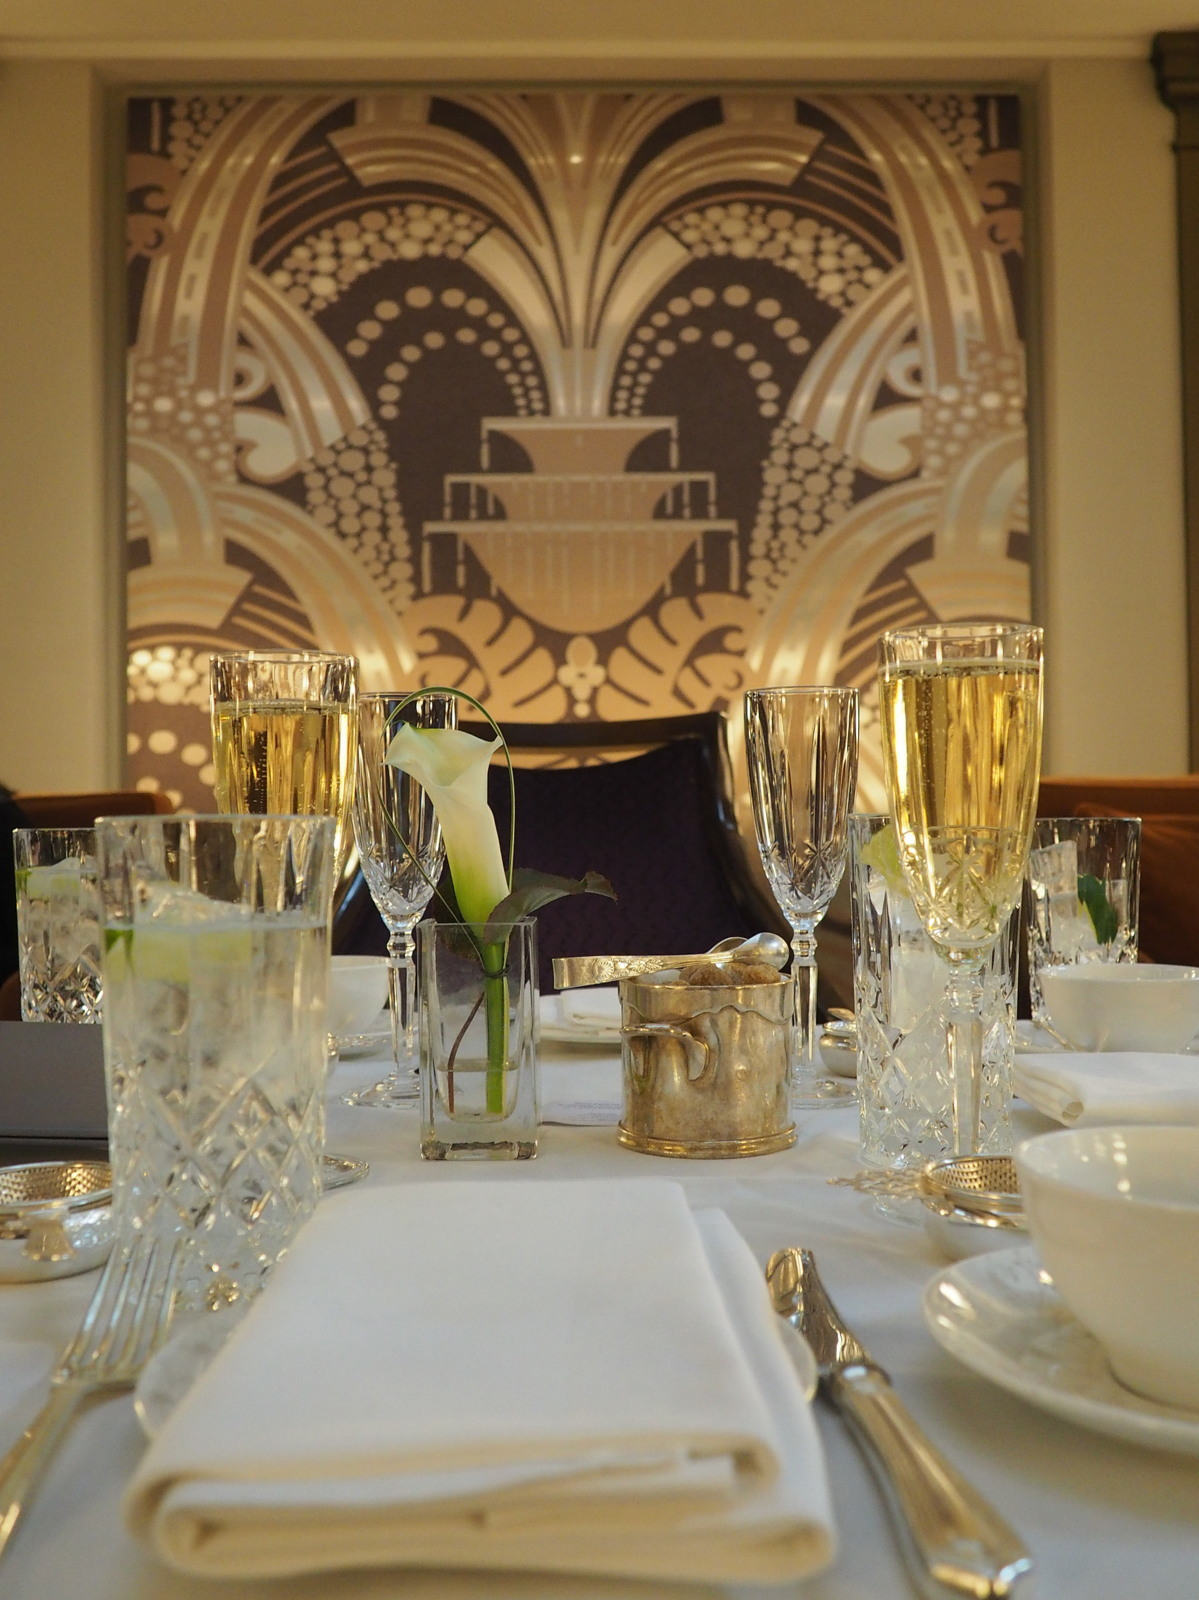 Hitting the high notes – A limited edition jazz afternoon tea at the Sheraton Grand Hotel Park Lane Hotel